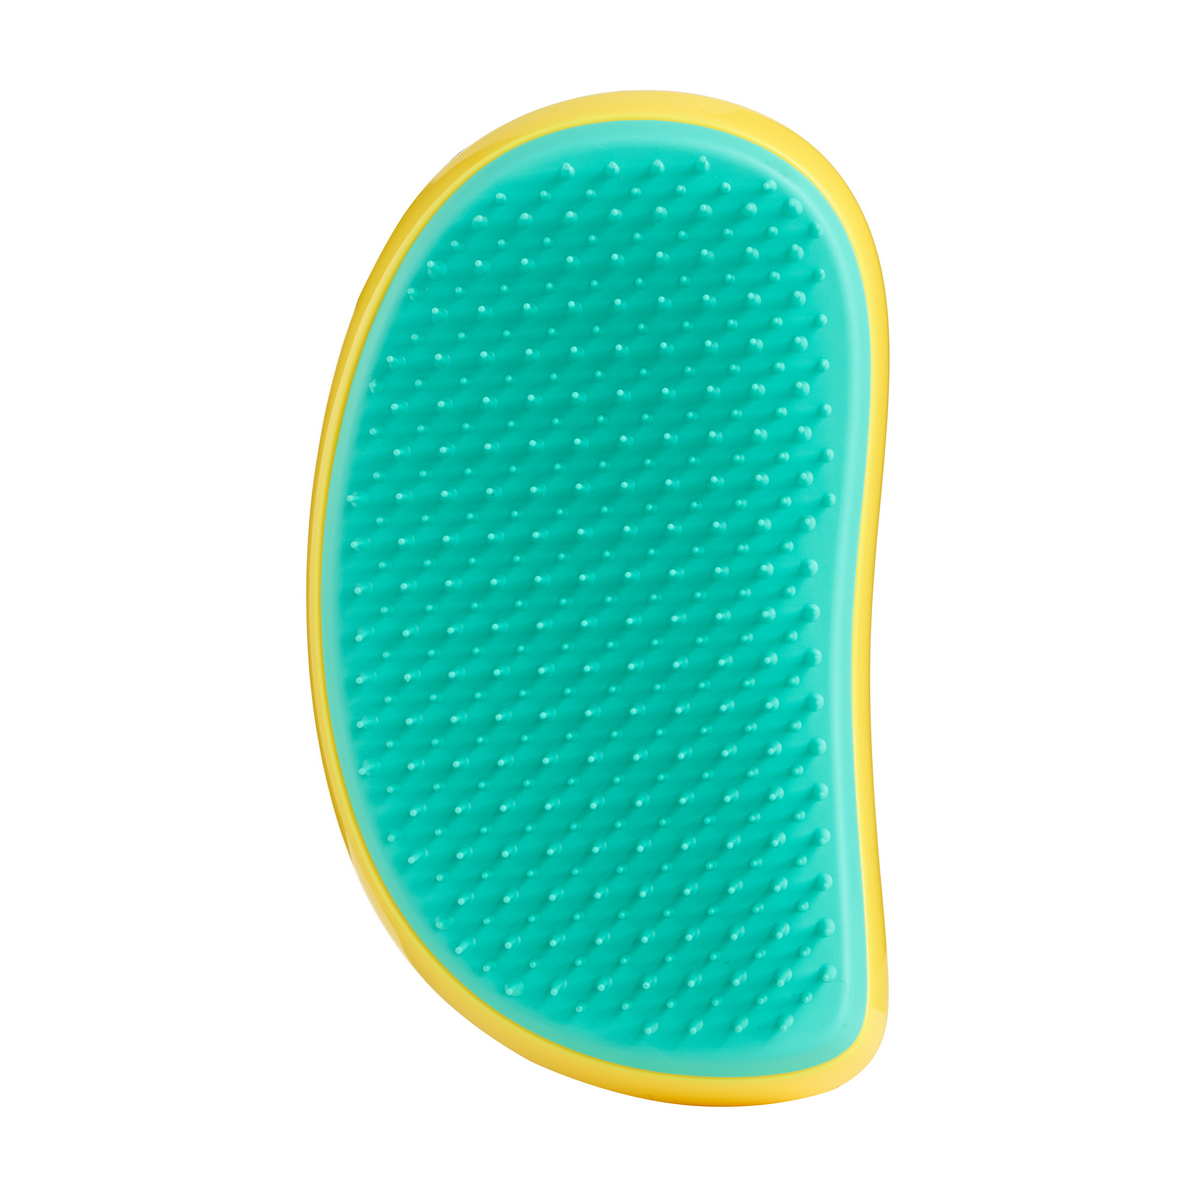 Расческа Tangle Teezer Salon Elite Yellow&Green